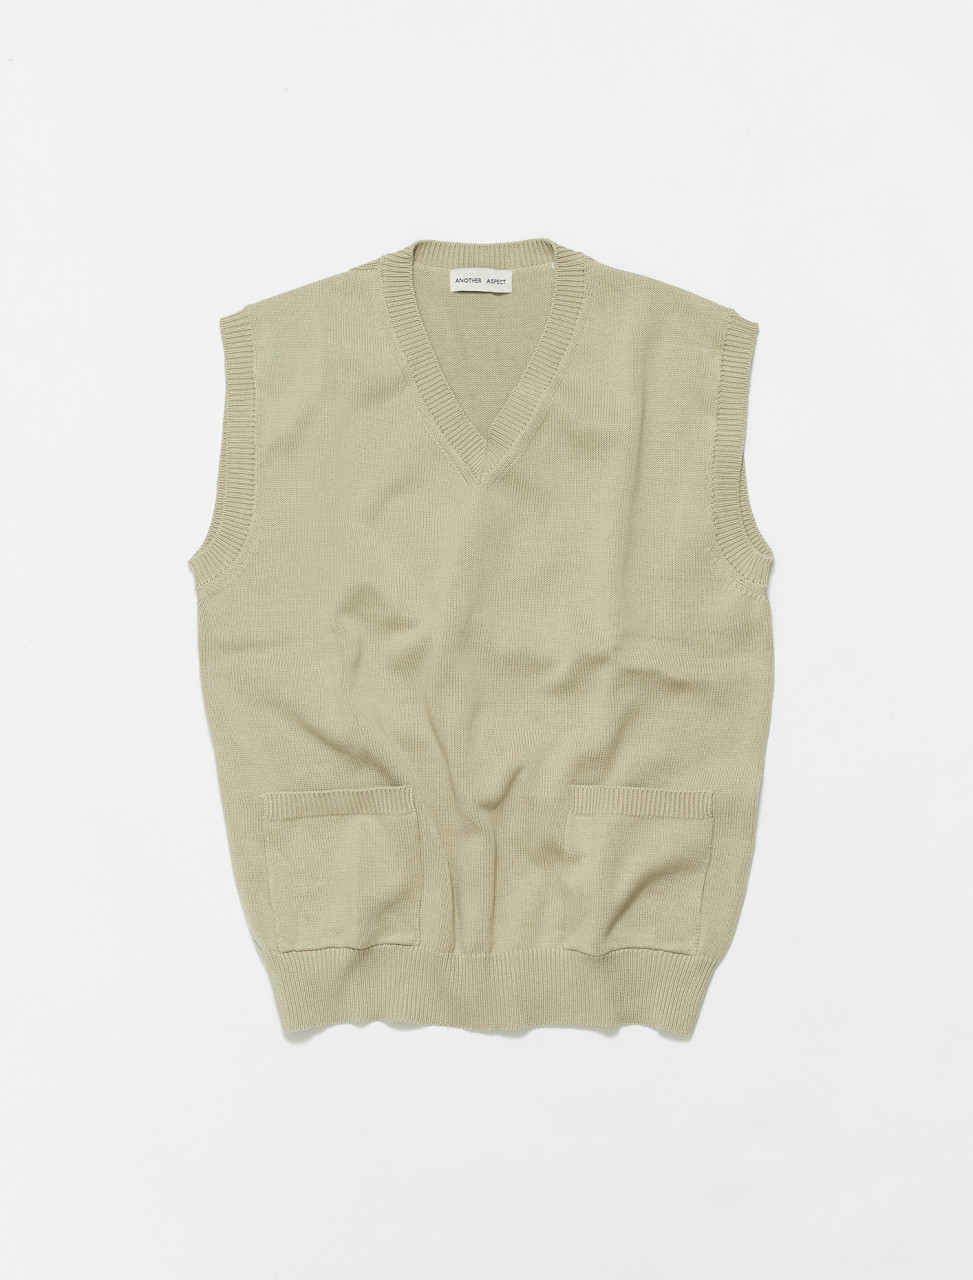 606060-600 ANOTHER ASPECT ANOTHER VEST 1.0 PALE OLIVE GREEN